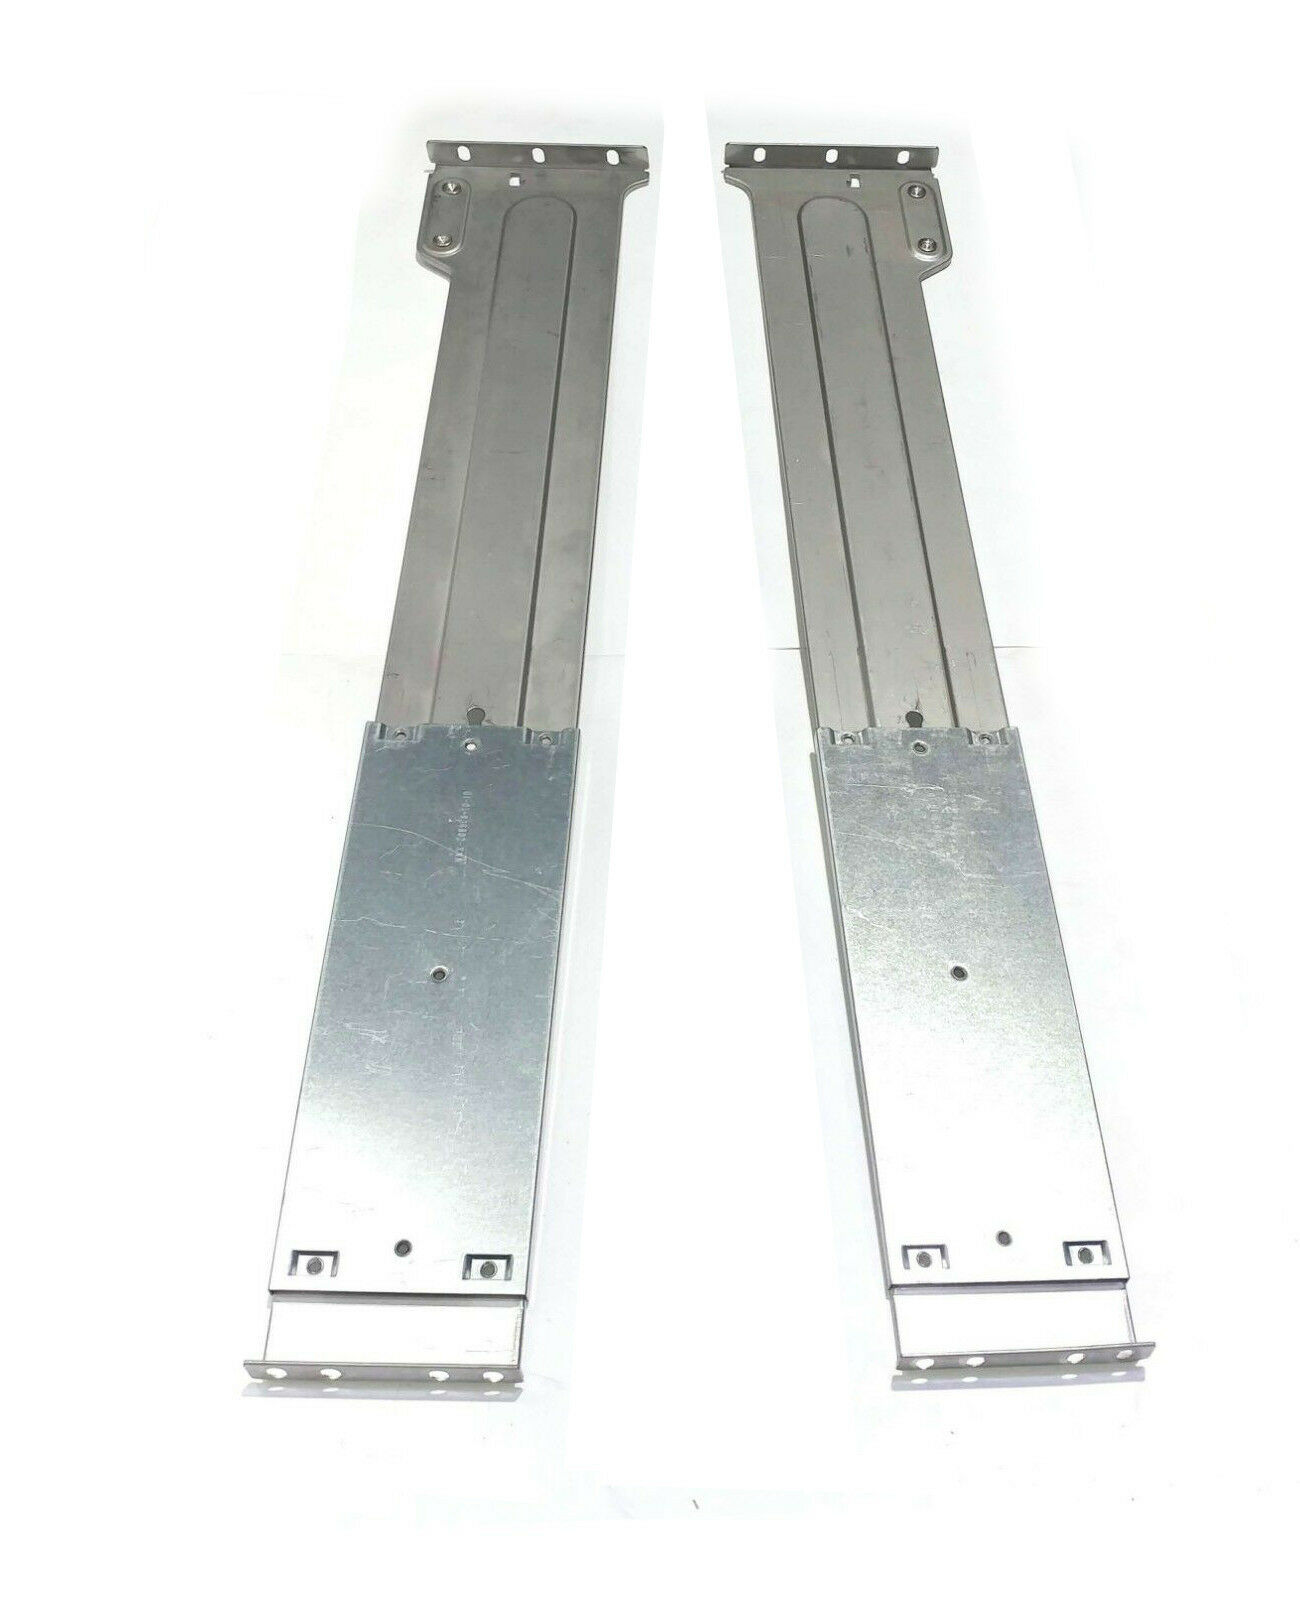 Supermicro Outer Mounting Rack Rails Kit For SC748 4U Chassis  MCP-290-00001-00